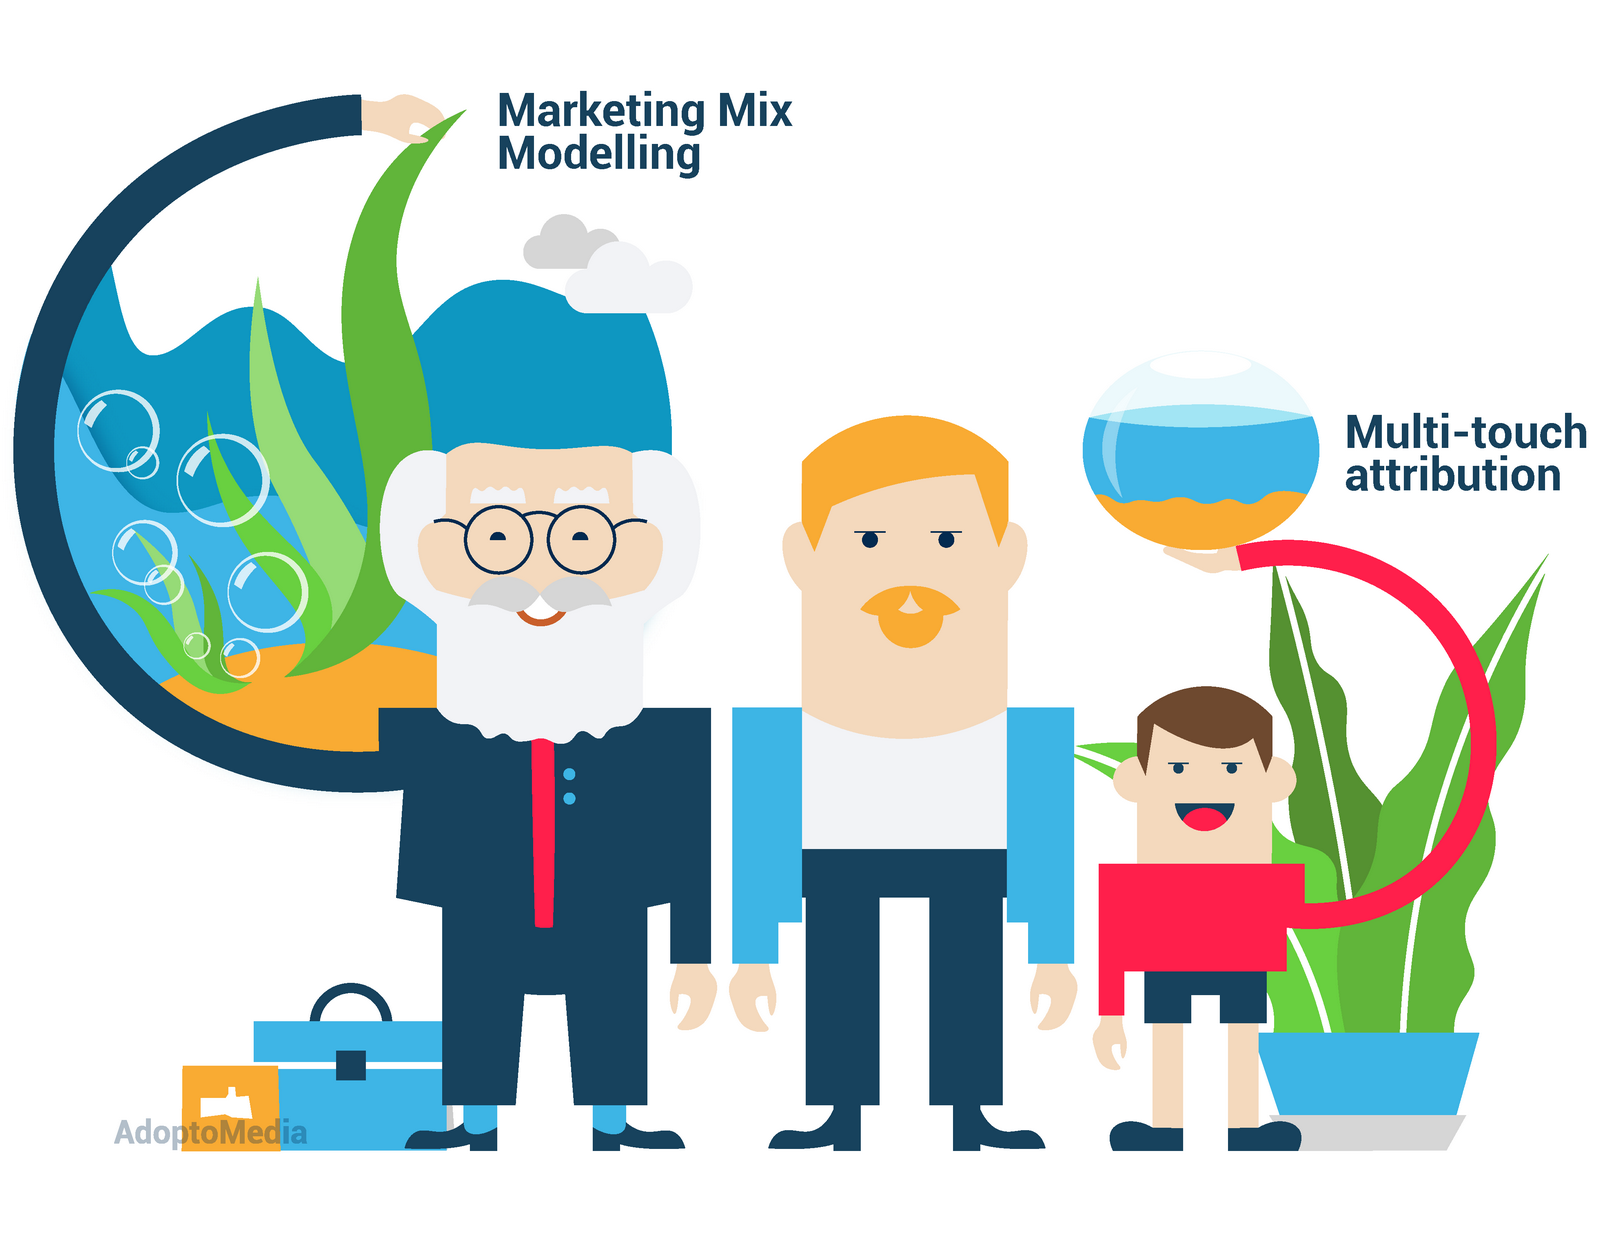 Marketing Mix Modelling, Attribution, Multi Touch Attribution, Unified Measurement Approach, advantages and disadvantages of Marketing Mix Modelling and Attribution, effective marketing measurement, marketing measurement challenges, AdoptoMedia